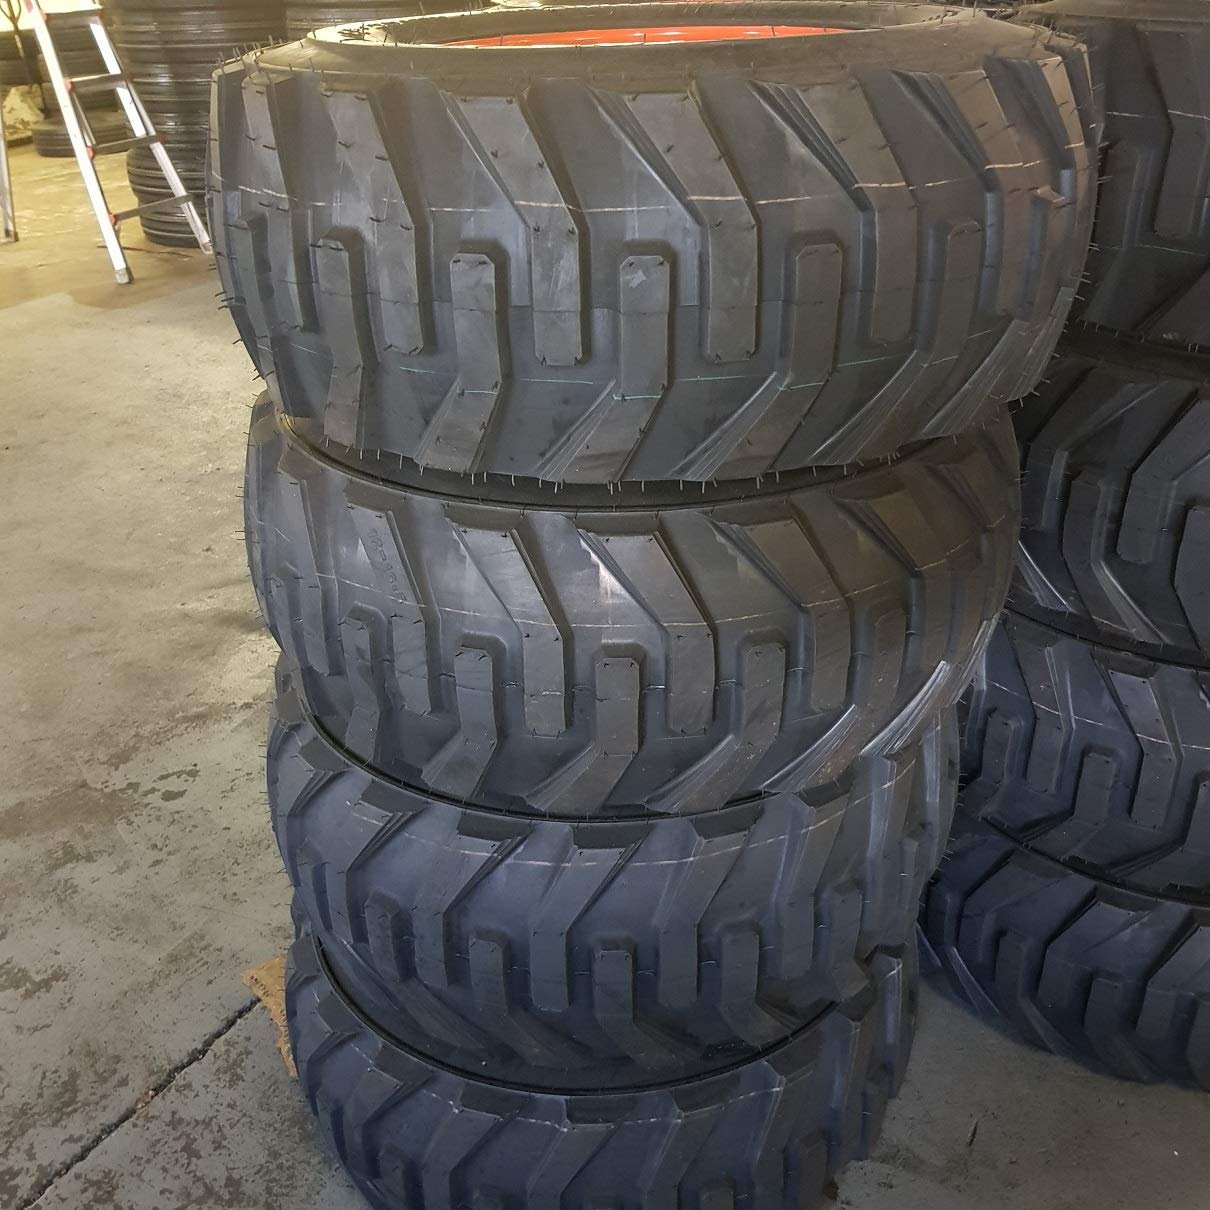 SET OF FOUR (4) 12-16.5 ROAD WARRIOR SKID STEER LOADER TIRE S with ORANGE Color Rims mounted, 12 PLY, NHS SKS 532-12x16.5 by Road Warrior